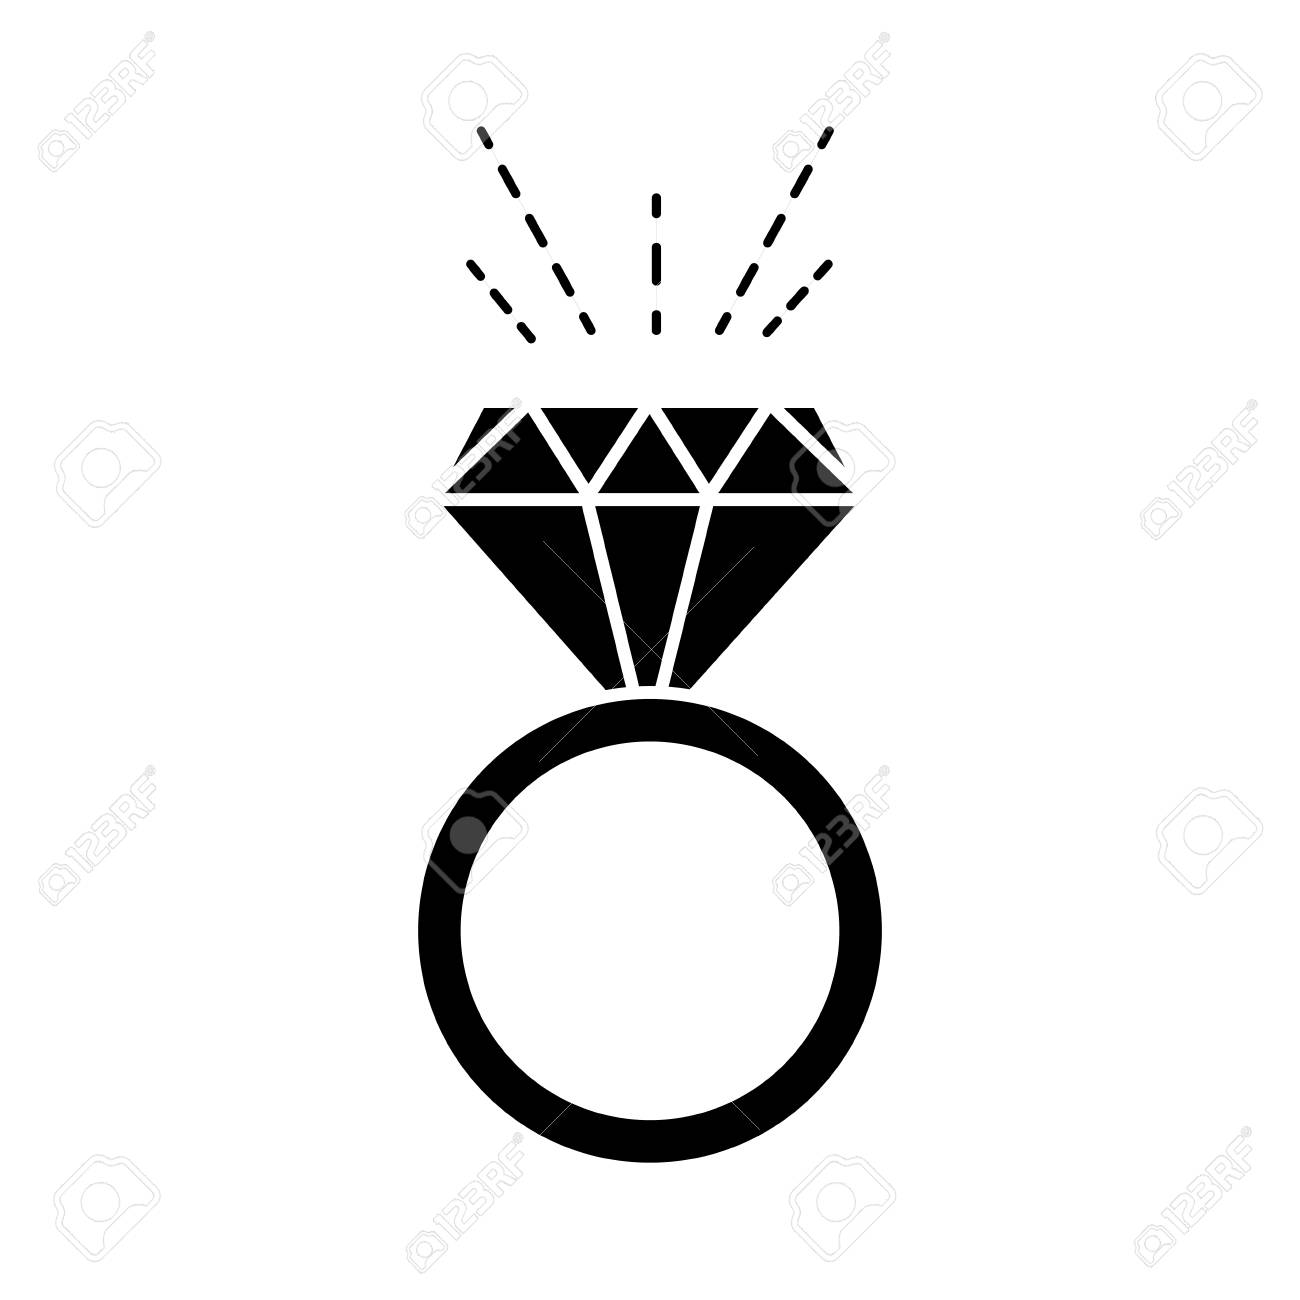 Silhouette Luxury Engagement Ring Wedding With Diamond Royalty Free Cliparts Vectors And Stock Illustration Image 97265783